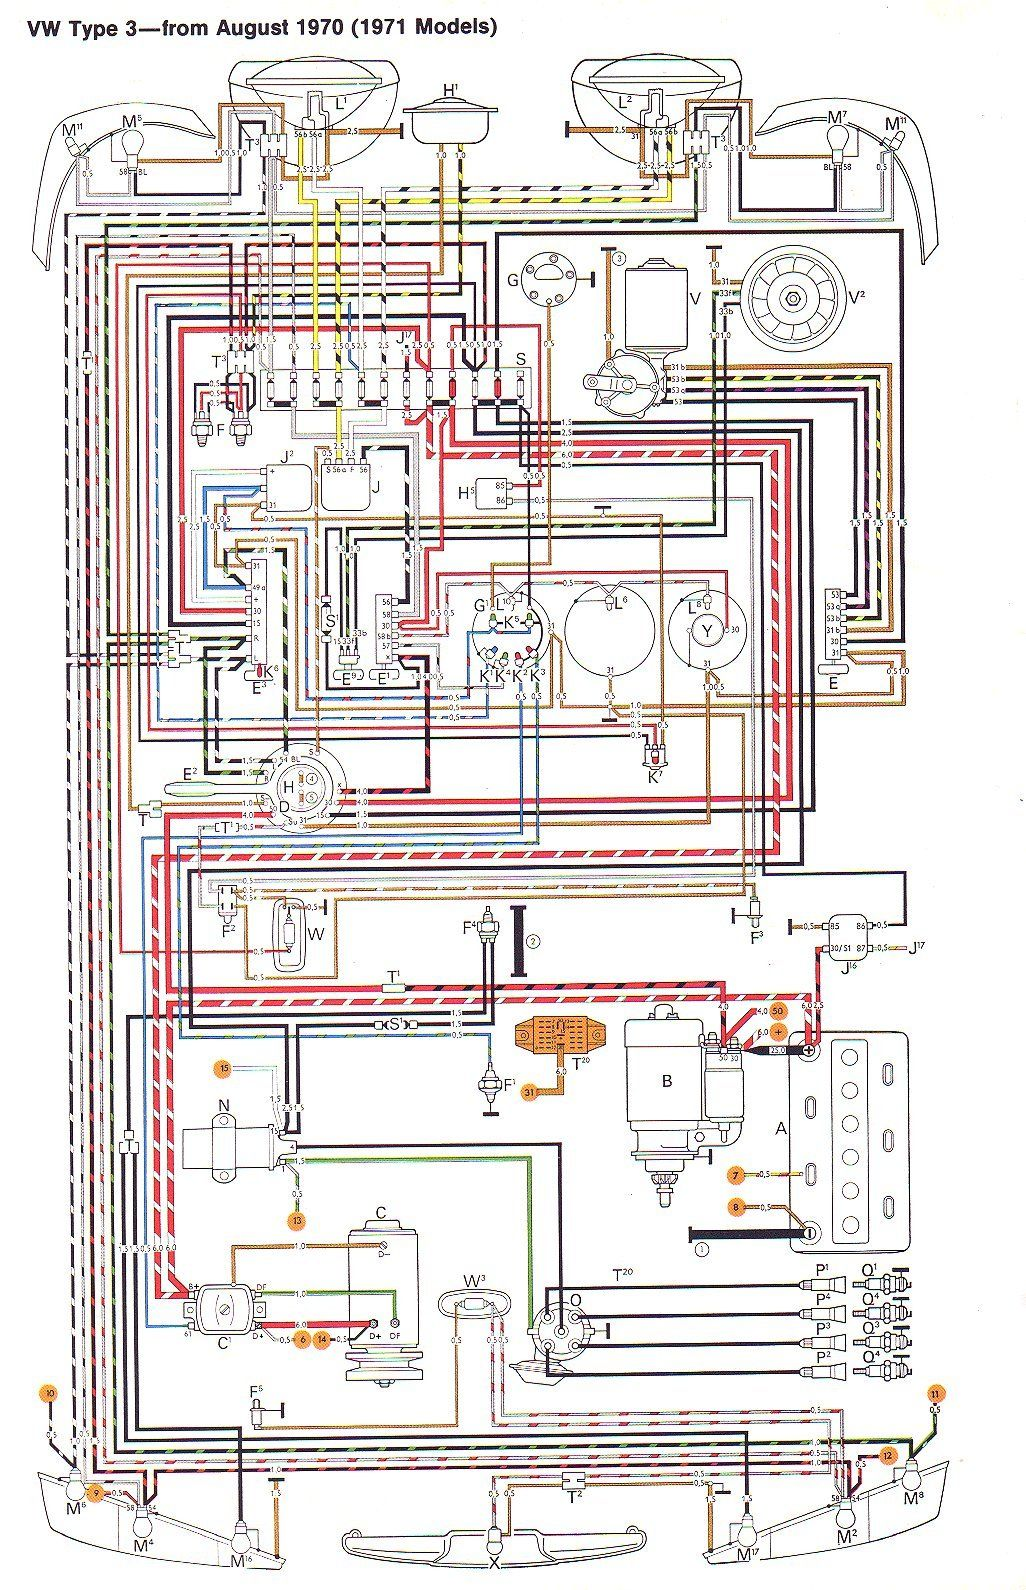 hight resolution of 1968 volkswagen wiring diagram wiring diagrams konsultwiring diagram for volkswagen van wiring diagram centre 1968 vw